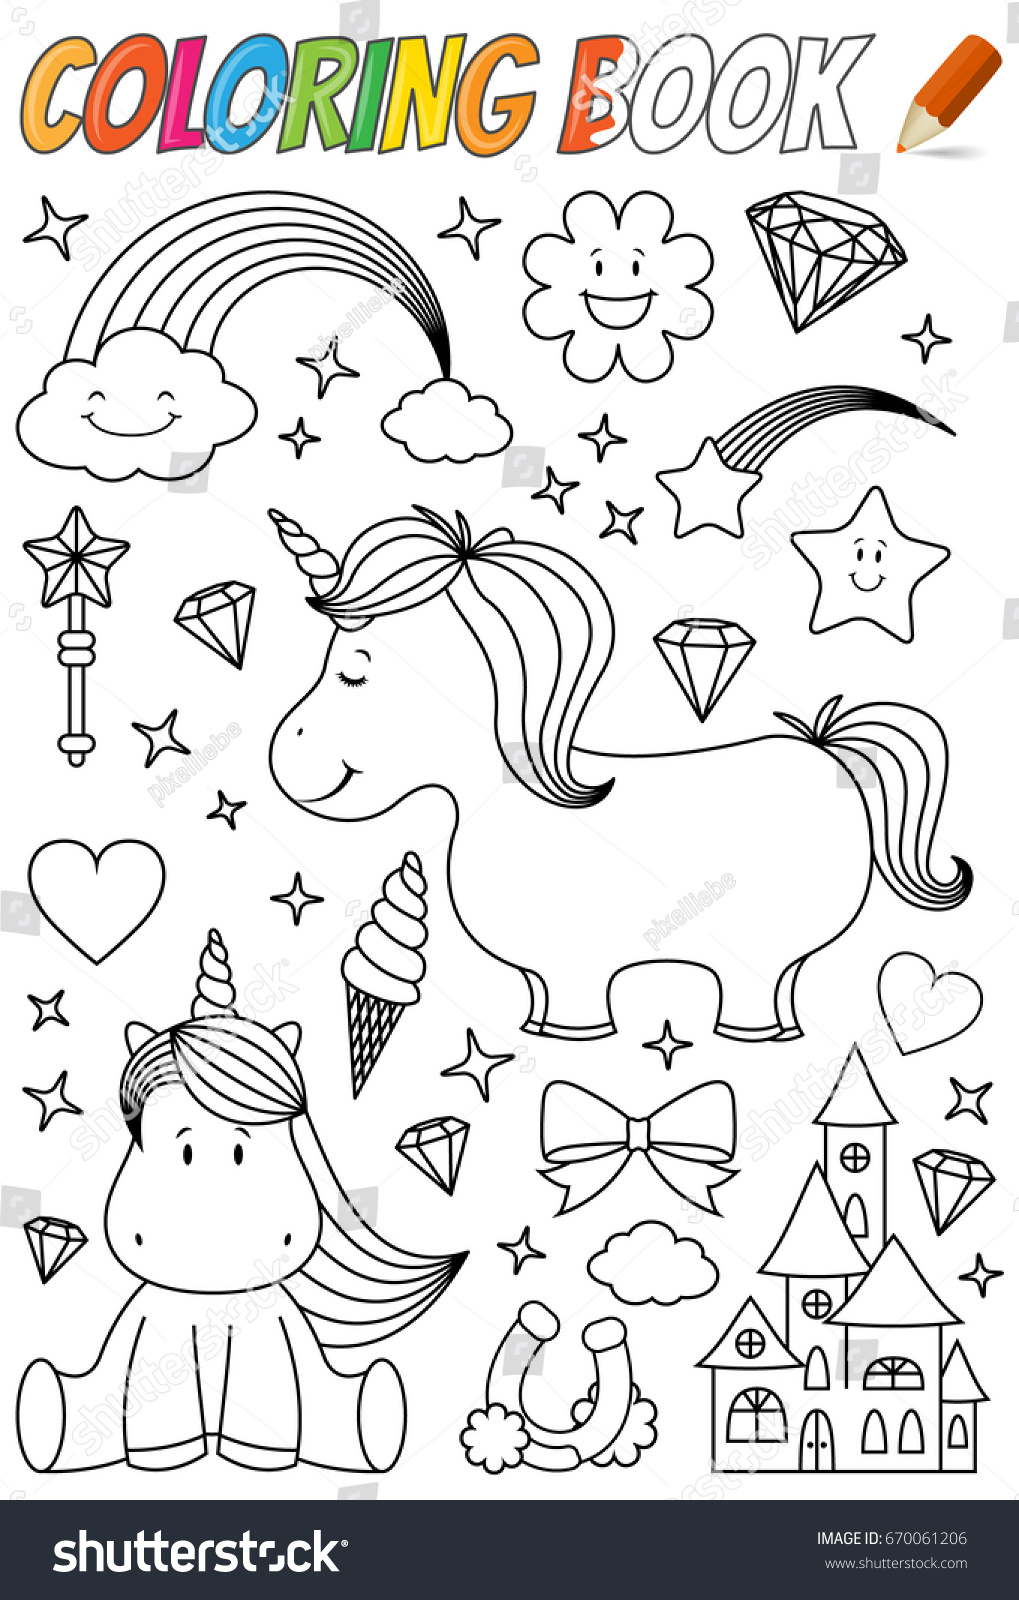 Unicorn Coloring Book Template Stock Photo (Photo, Vector ...